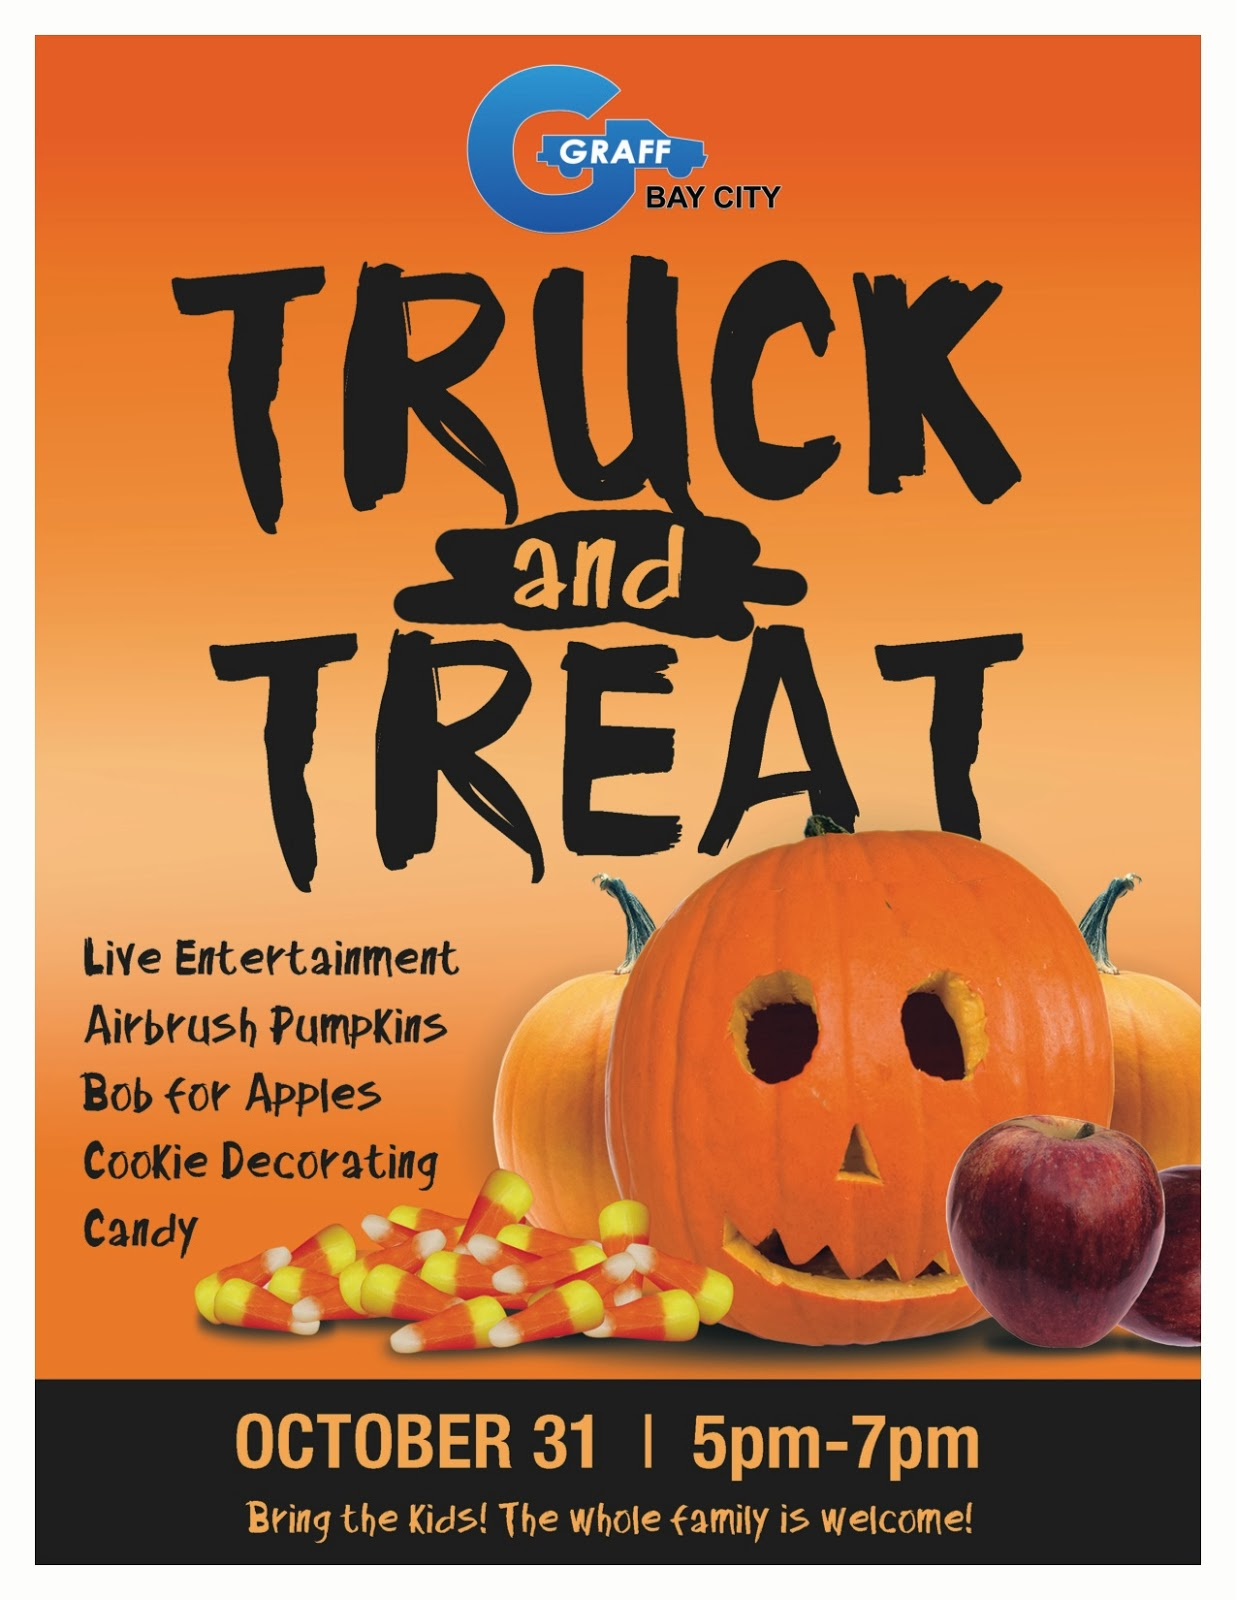 Truck and Treat at Graff Bay City